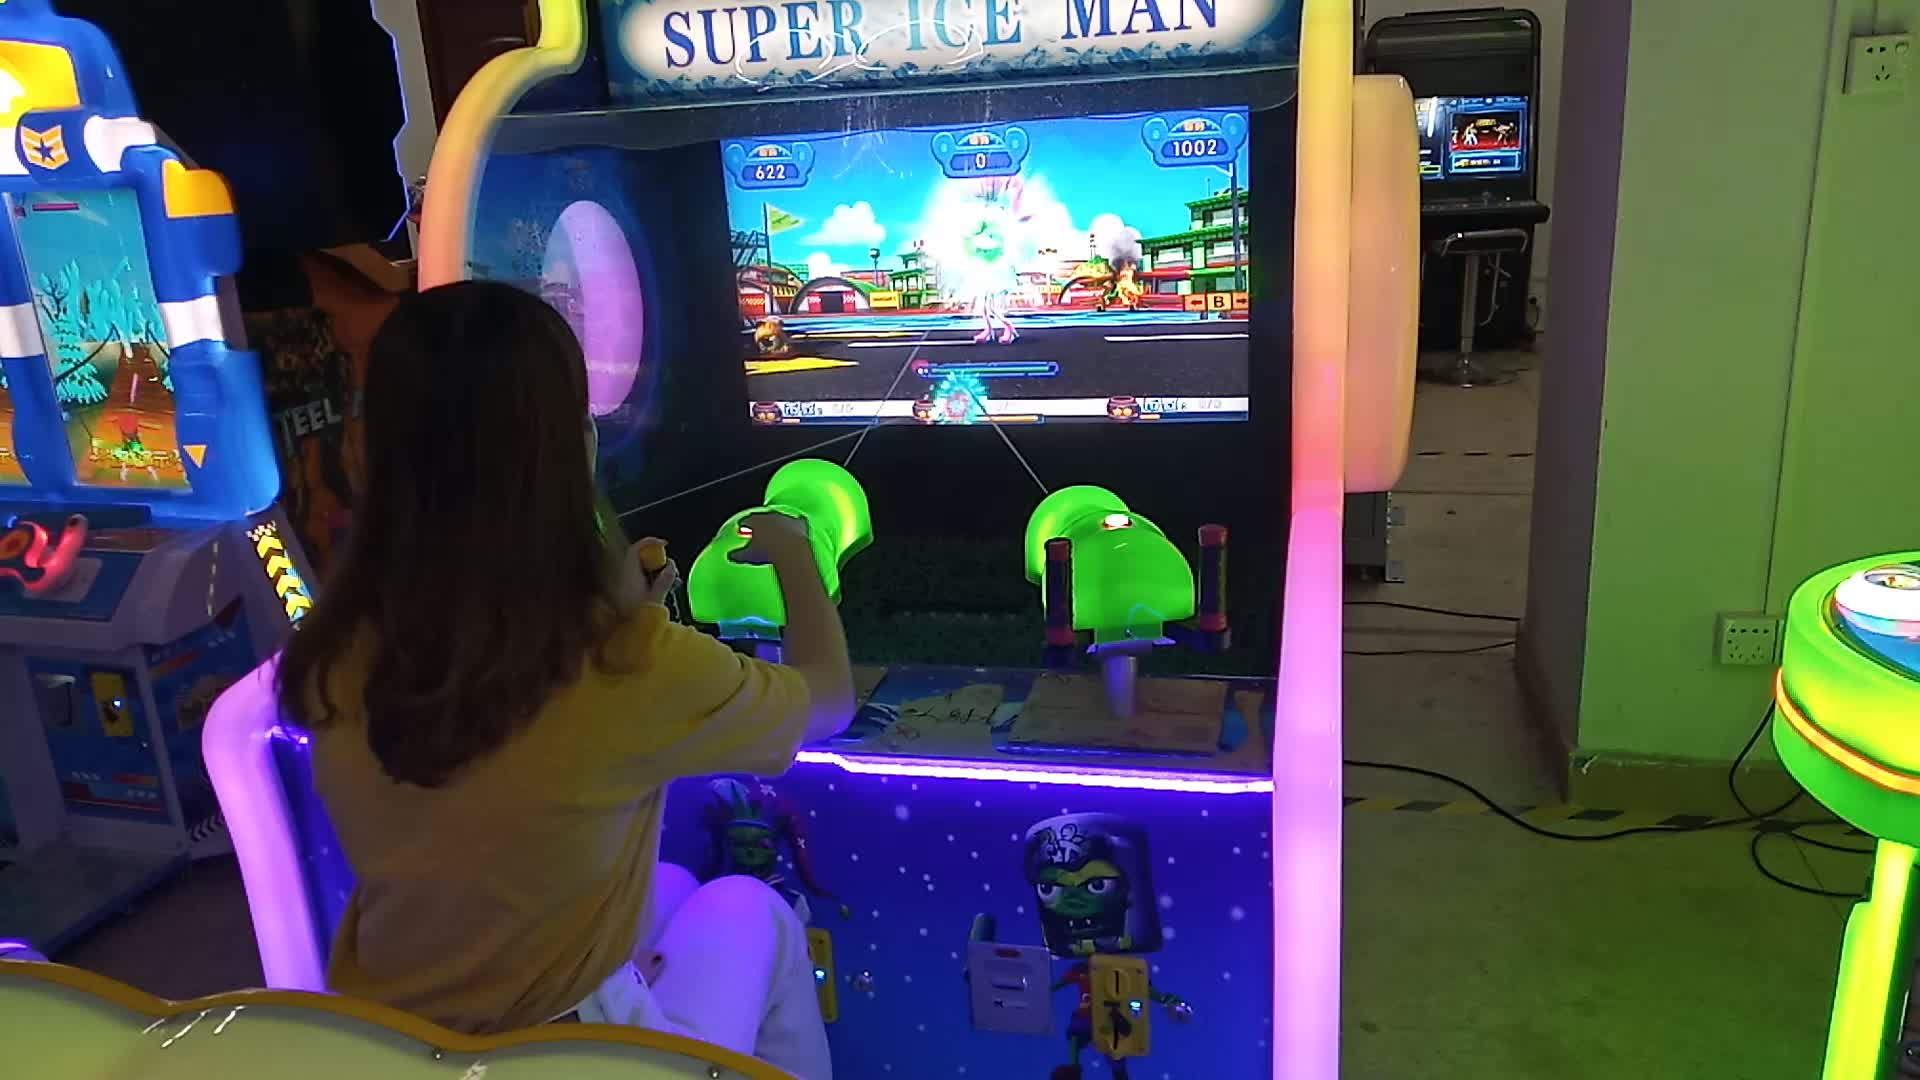 Super Ice Man Coin Operated Water Shooting Redemption Game Machine